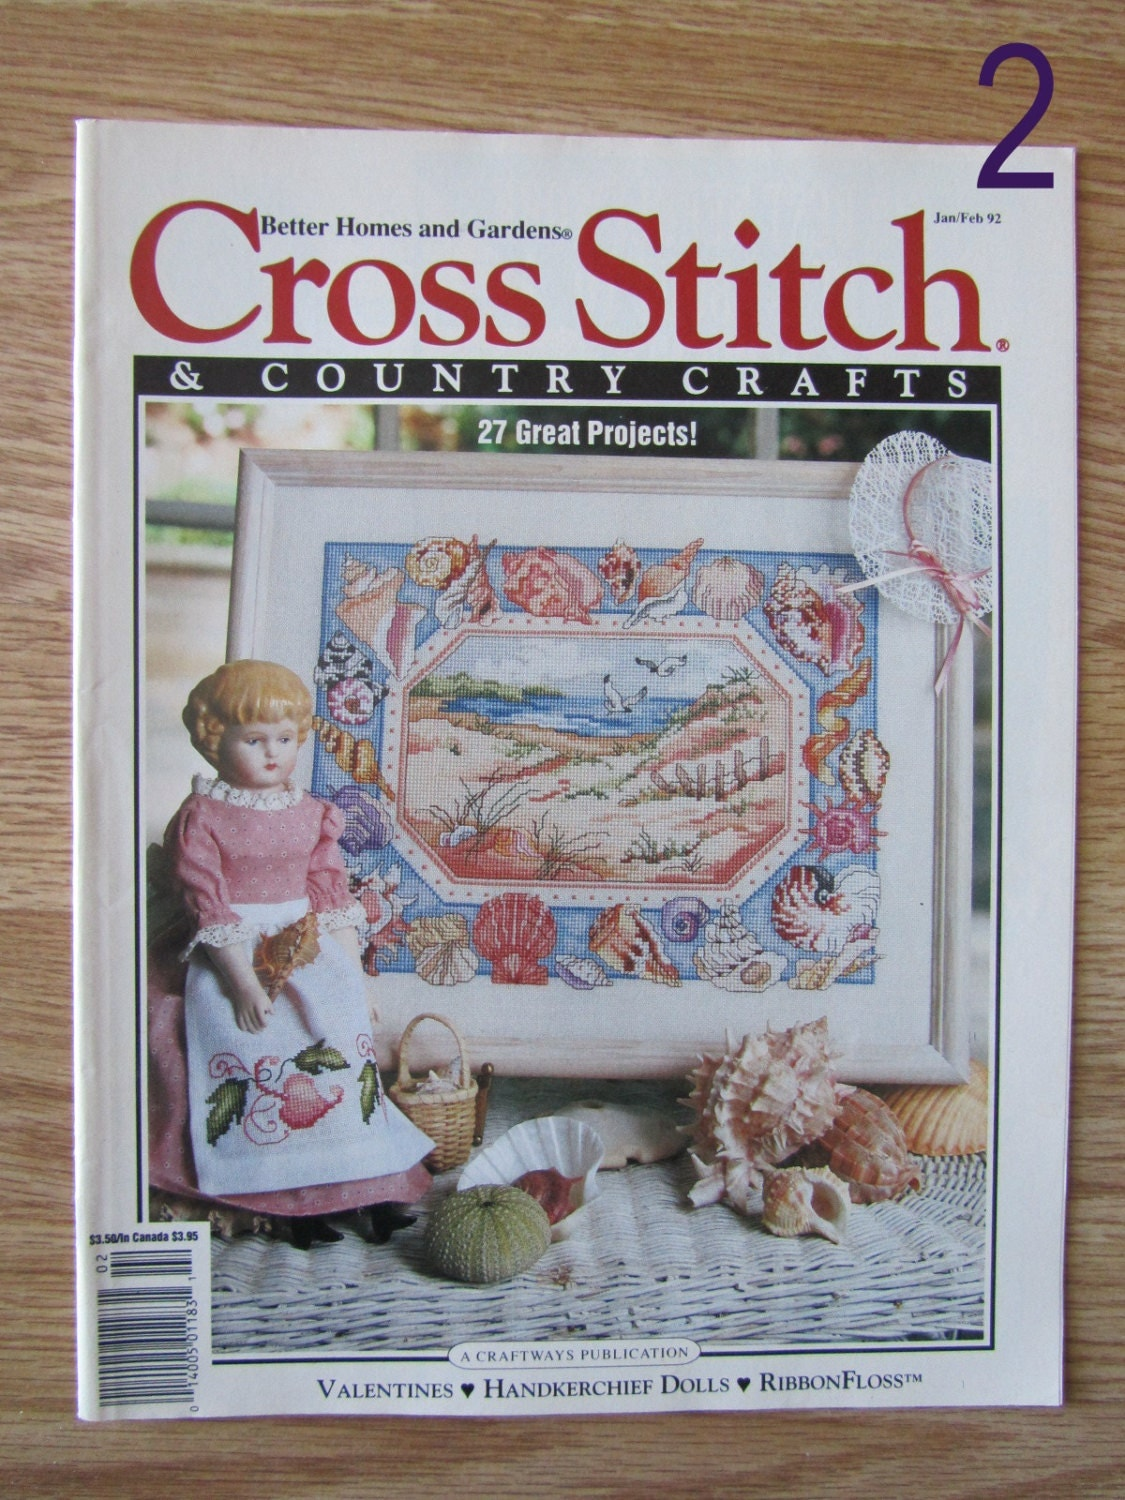 Cross stitch country crafts magazine back issues - Cross Stitch Country Crafts Vintage Magazines Back Issues 1987 1988 1990 1992 Stitcher S Accessories Medieval Manuscript Spring Wreath Sold By